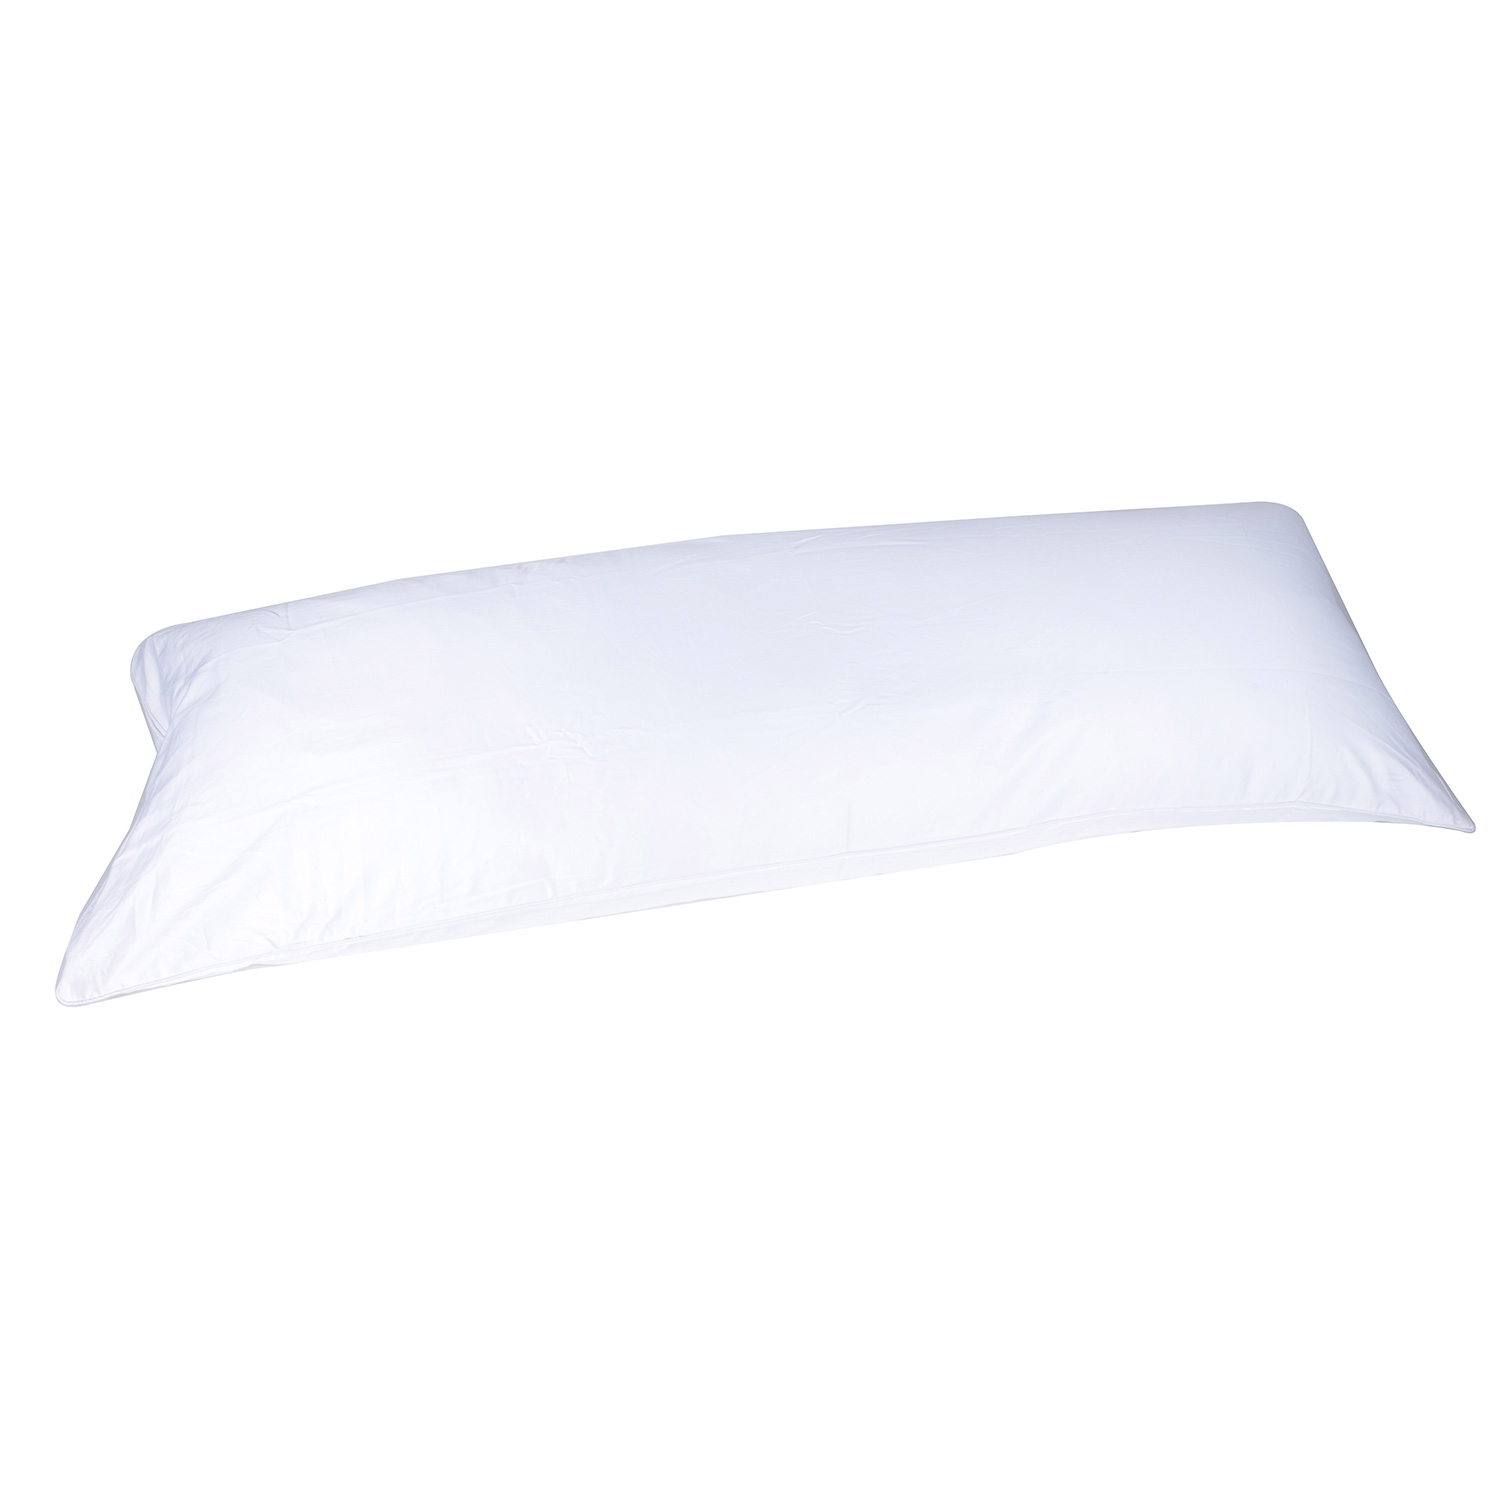 400 thread count cotton 20 x60 body pillow cover pillowcase double sided zipper white color 5 feet long